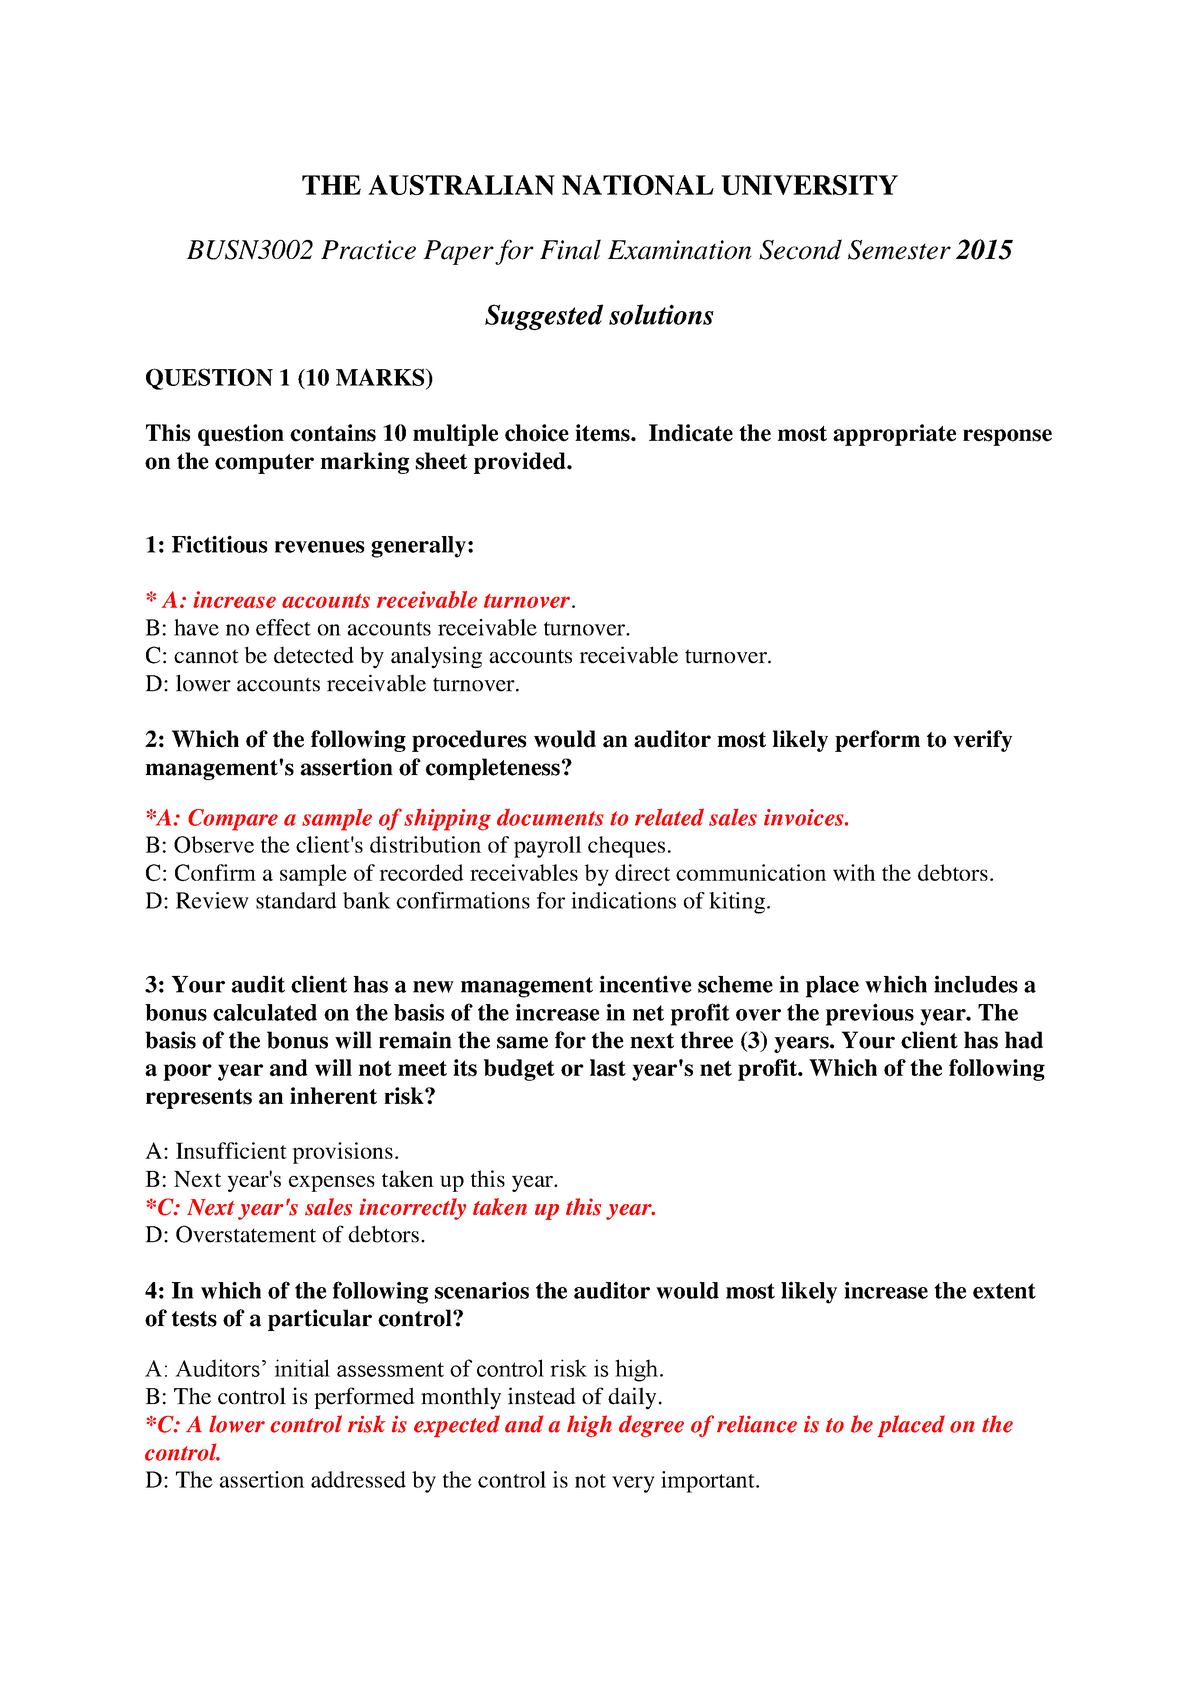 Exam 2015 - BUSN3002: Auditing - StuDocu